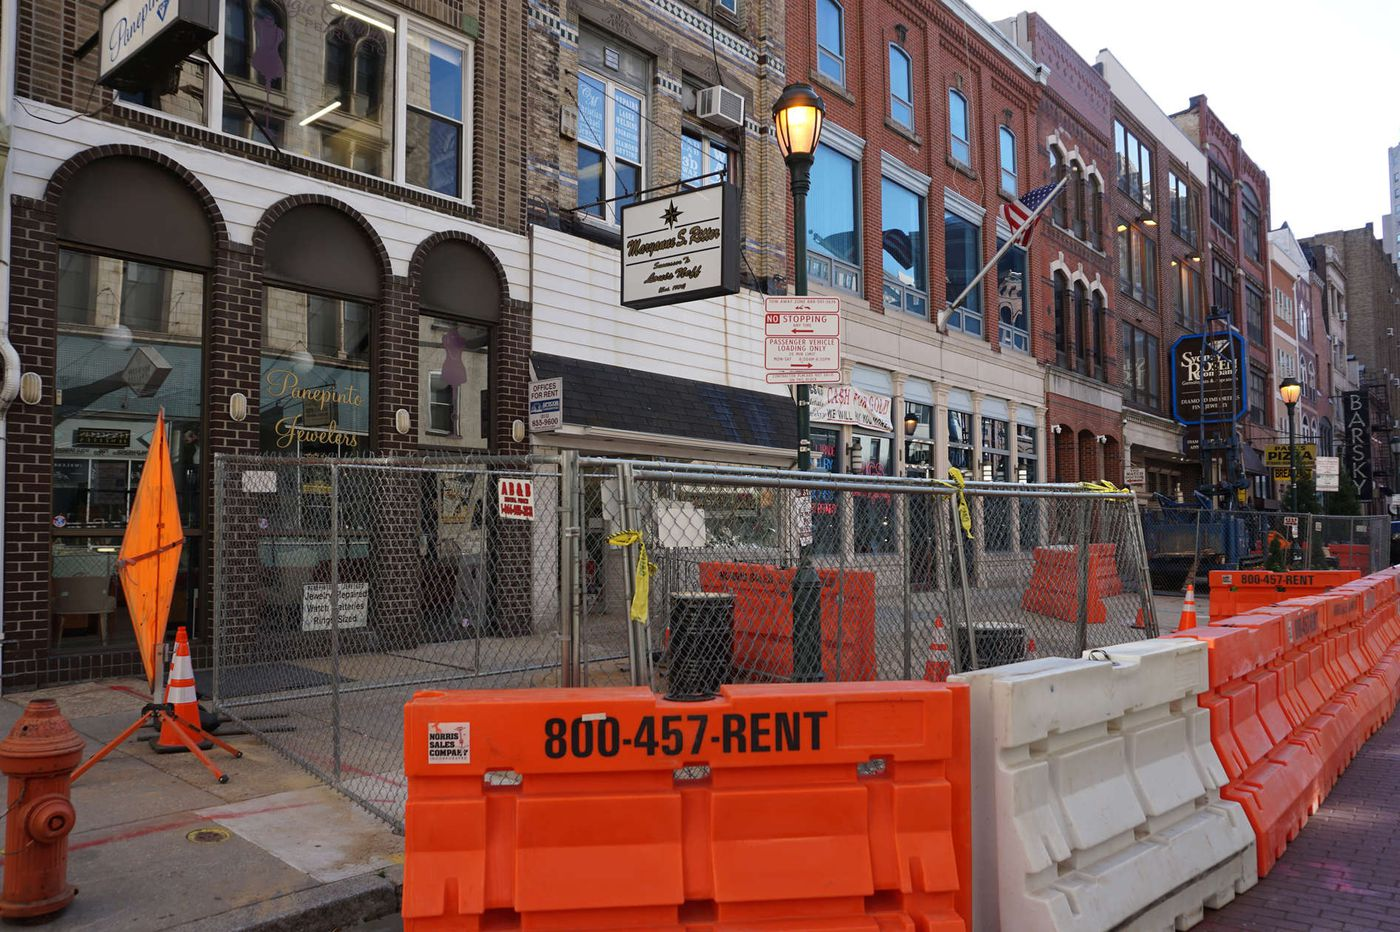 Mayor Kenney calls Toll's latest Jeweler's Row plans 'deeply disturbing'